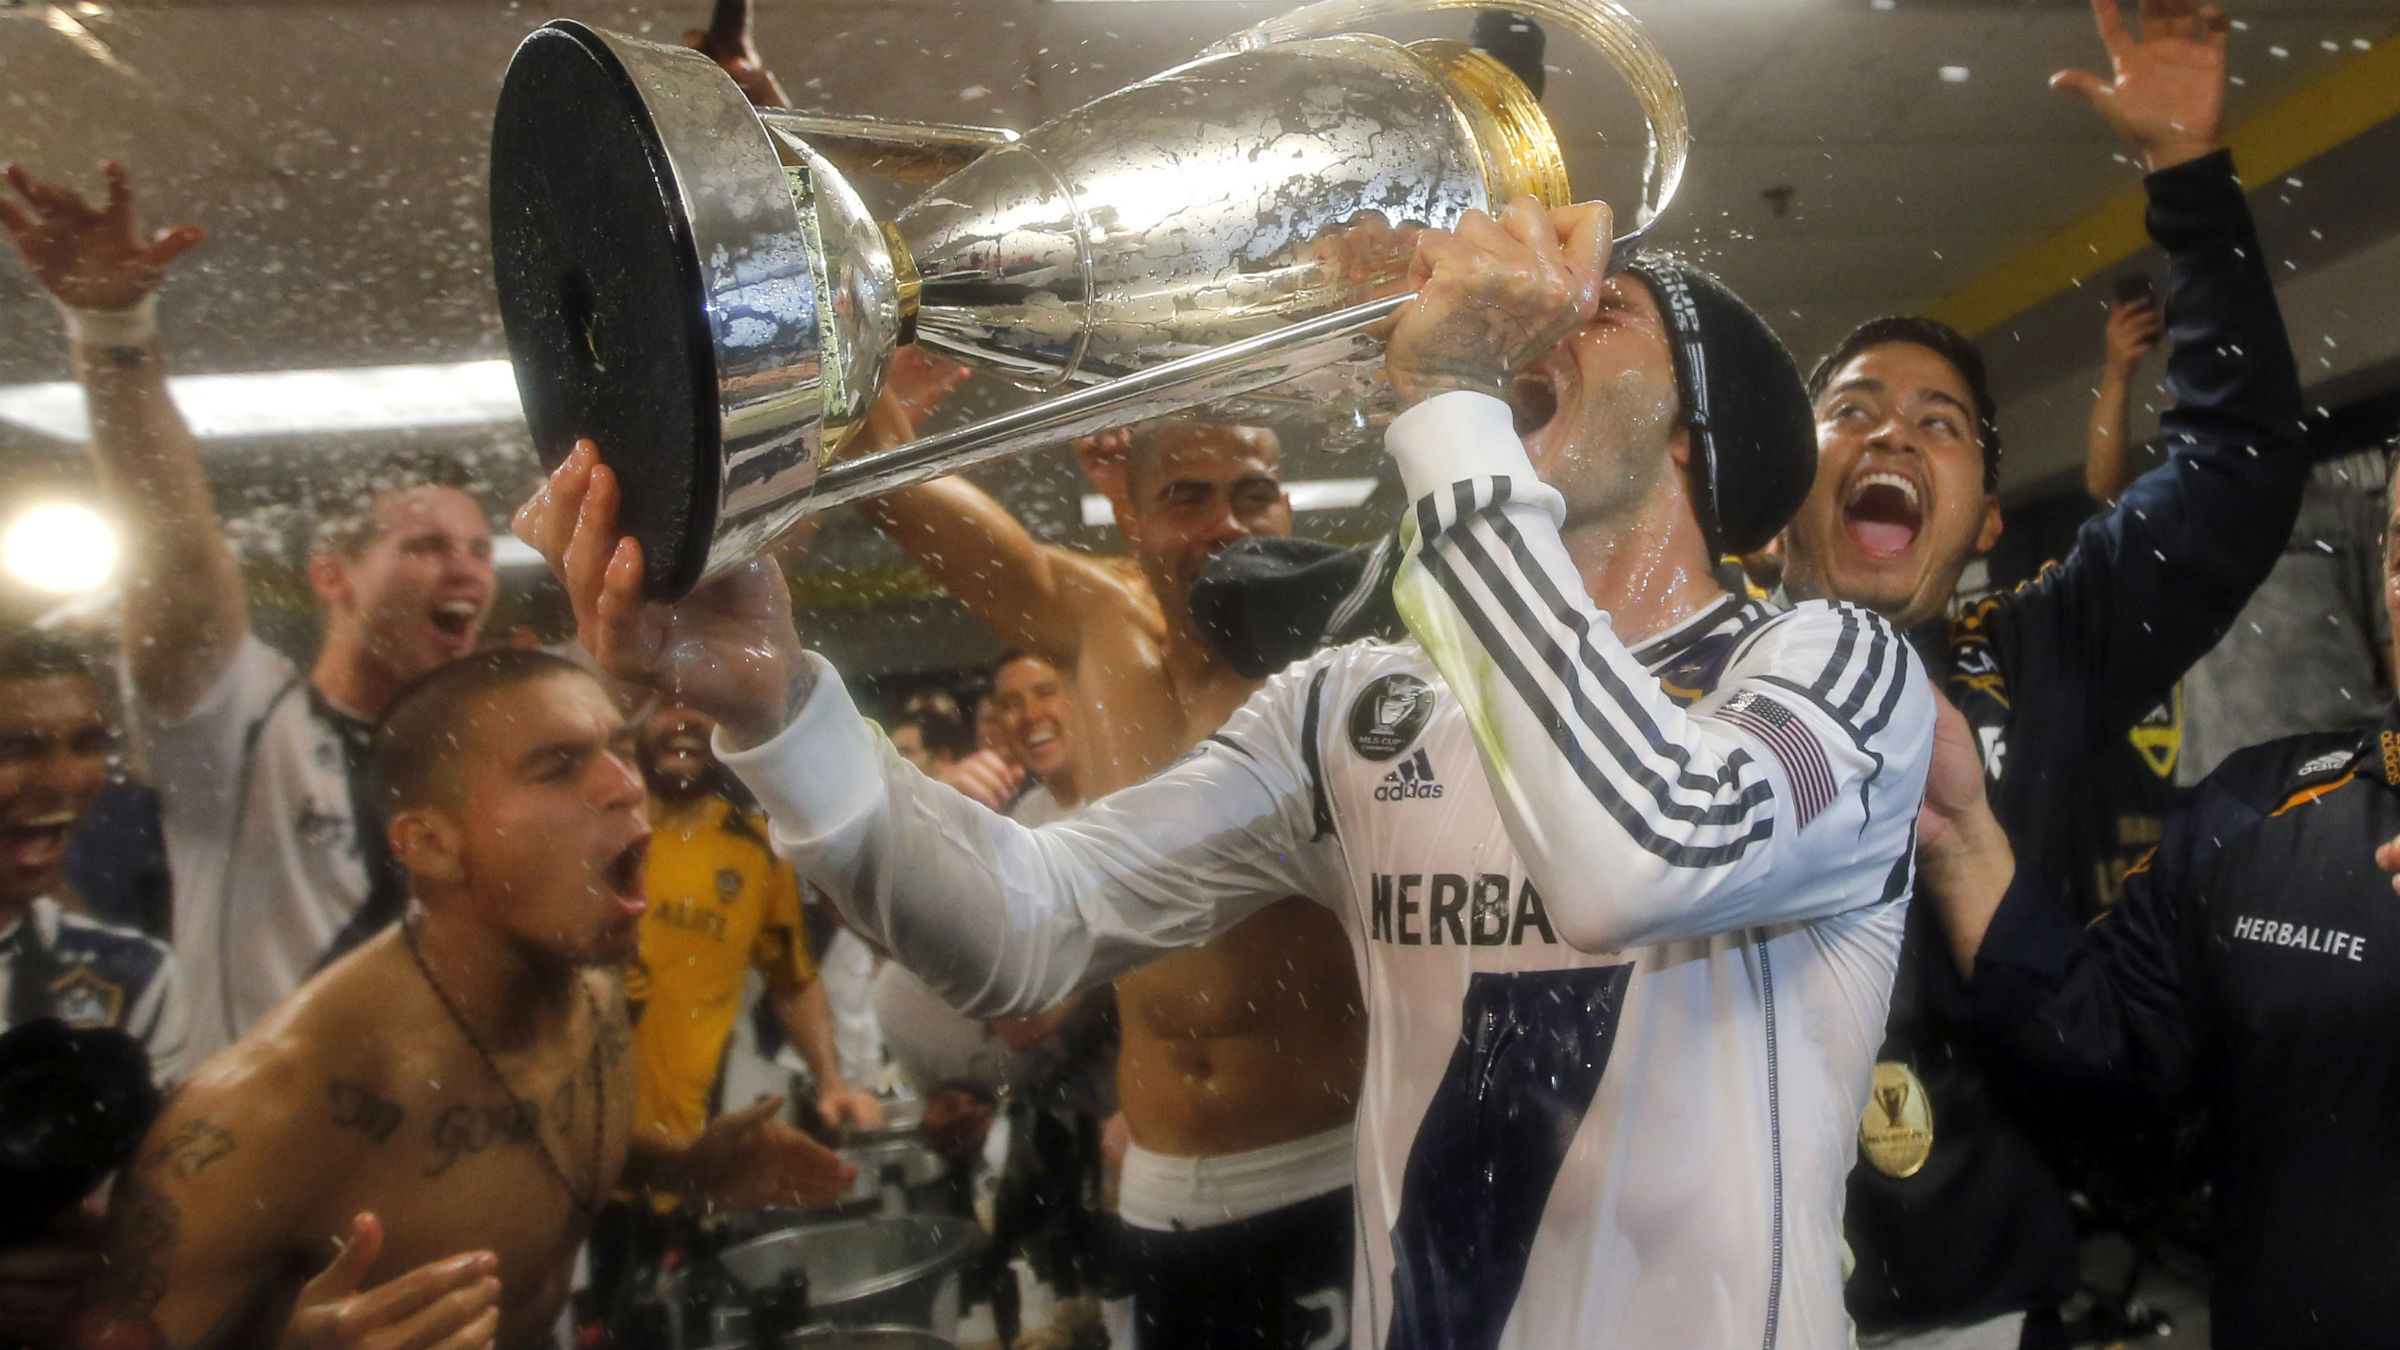 David Beckham celebrating in a locker room, drinking champagne out of a trophy.